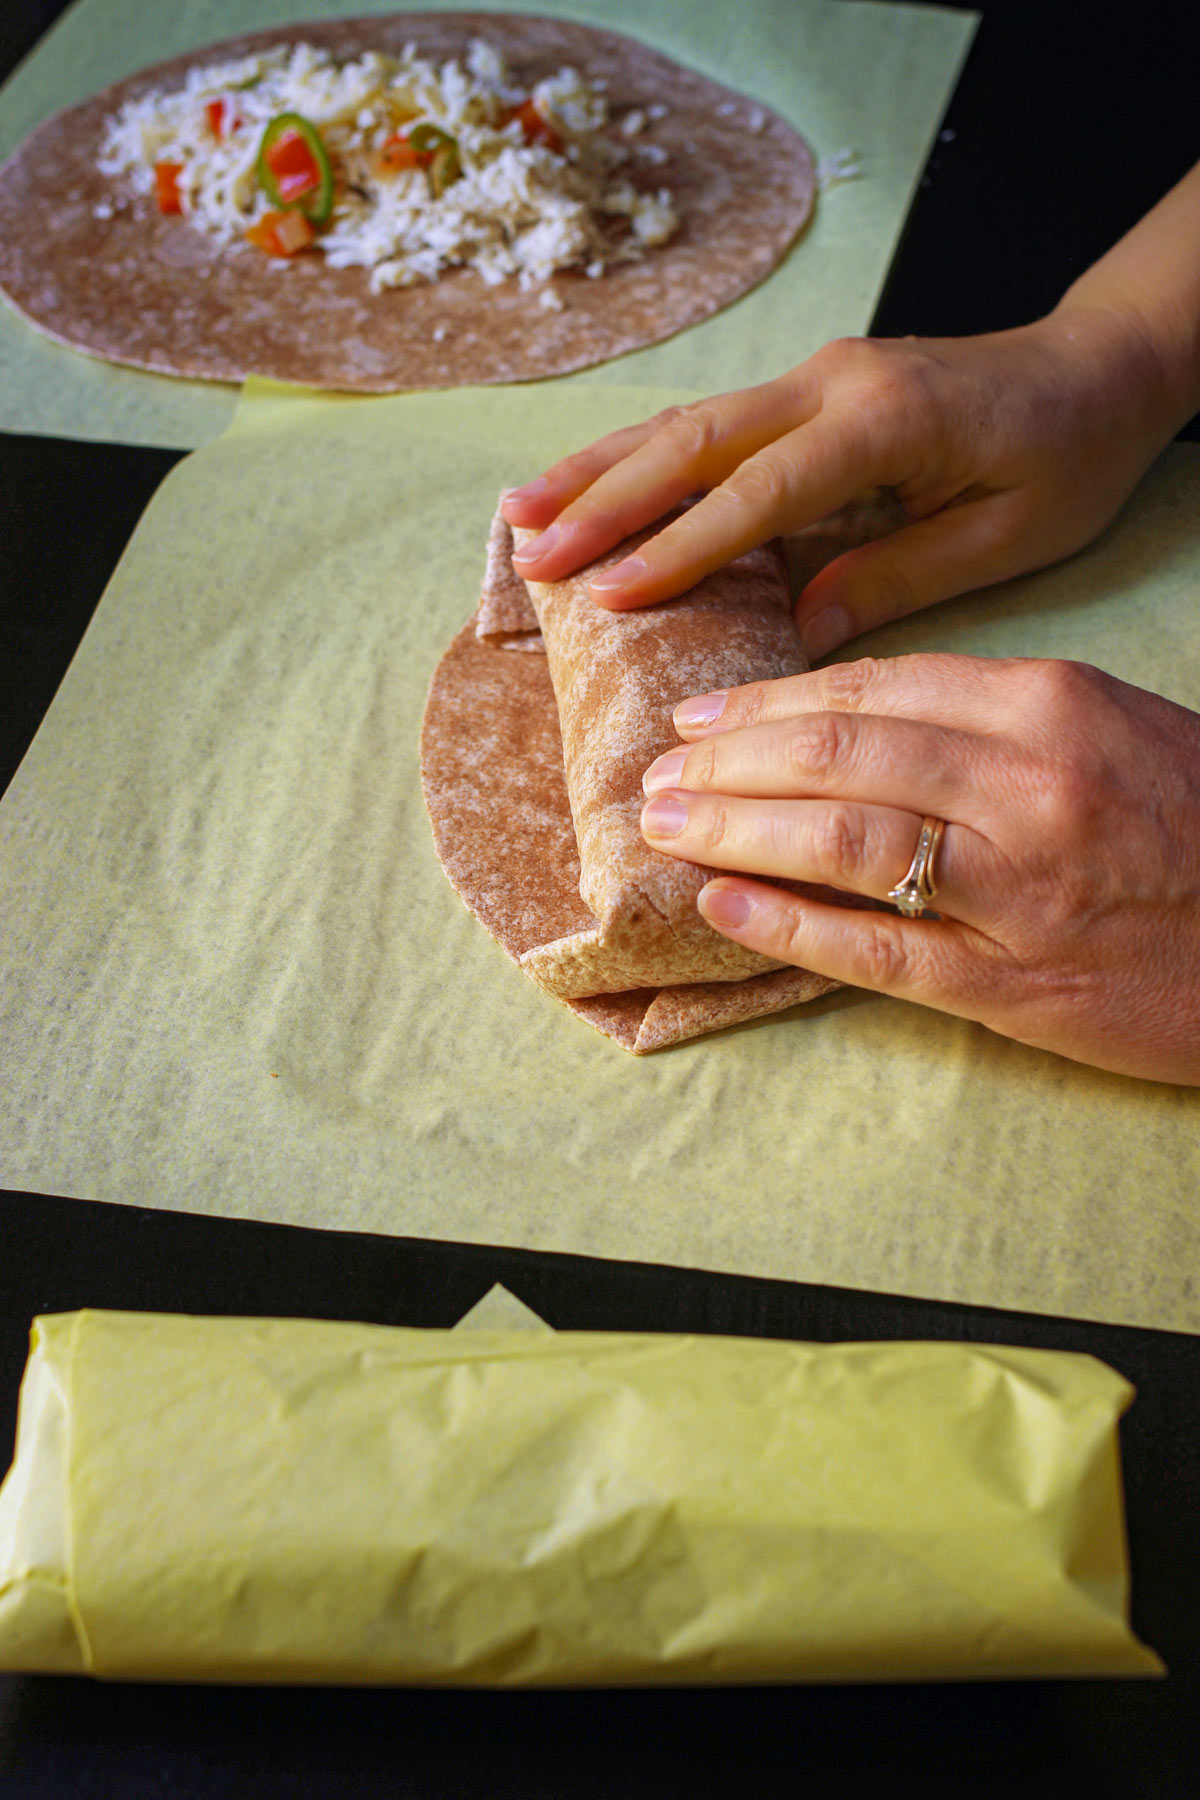 hand rolling the burrito the rest of the way.